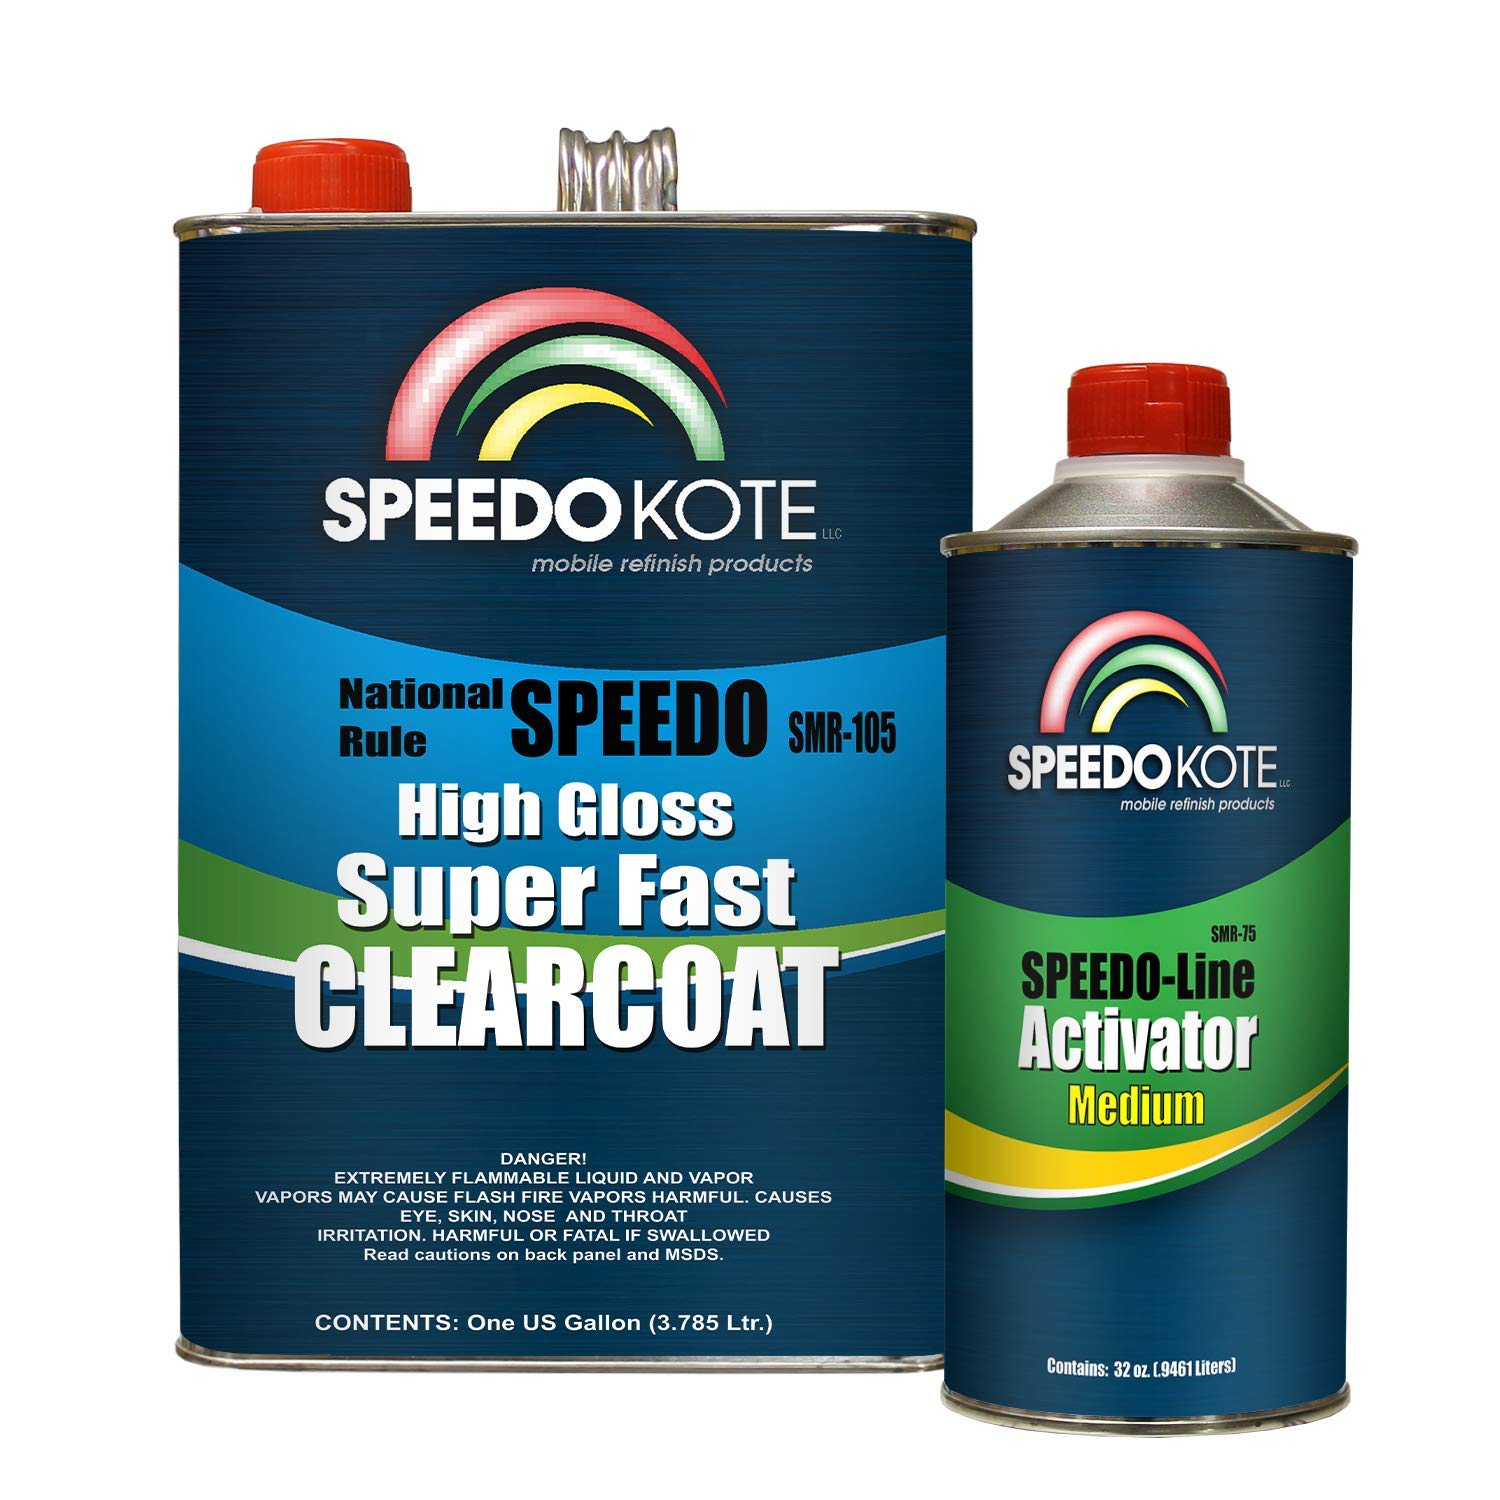 Speedokote Mobile Refinish Clear Coat High Gloss Super Fast Clearcoat Gallon Kit SMR-105/75 by Speedokote